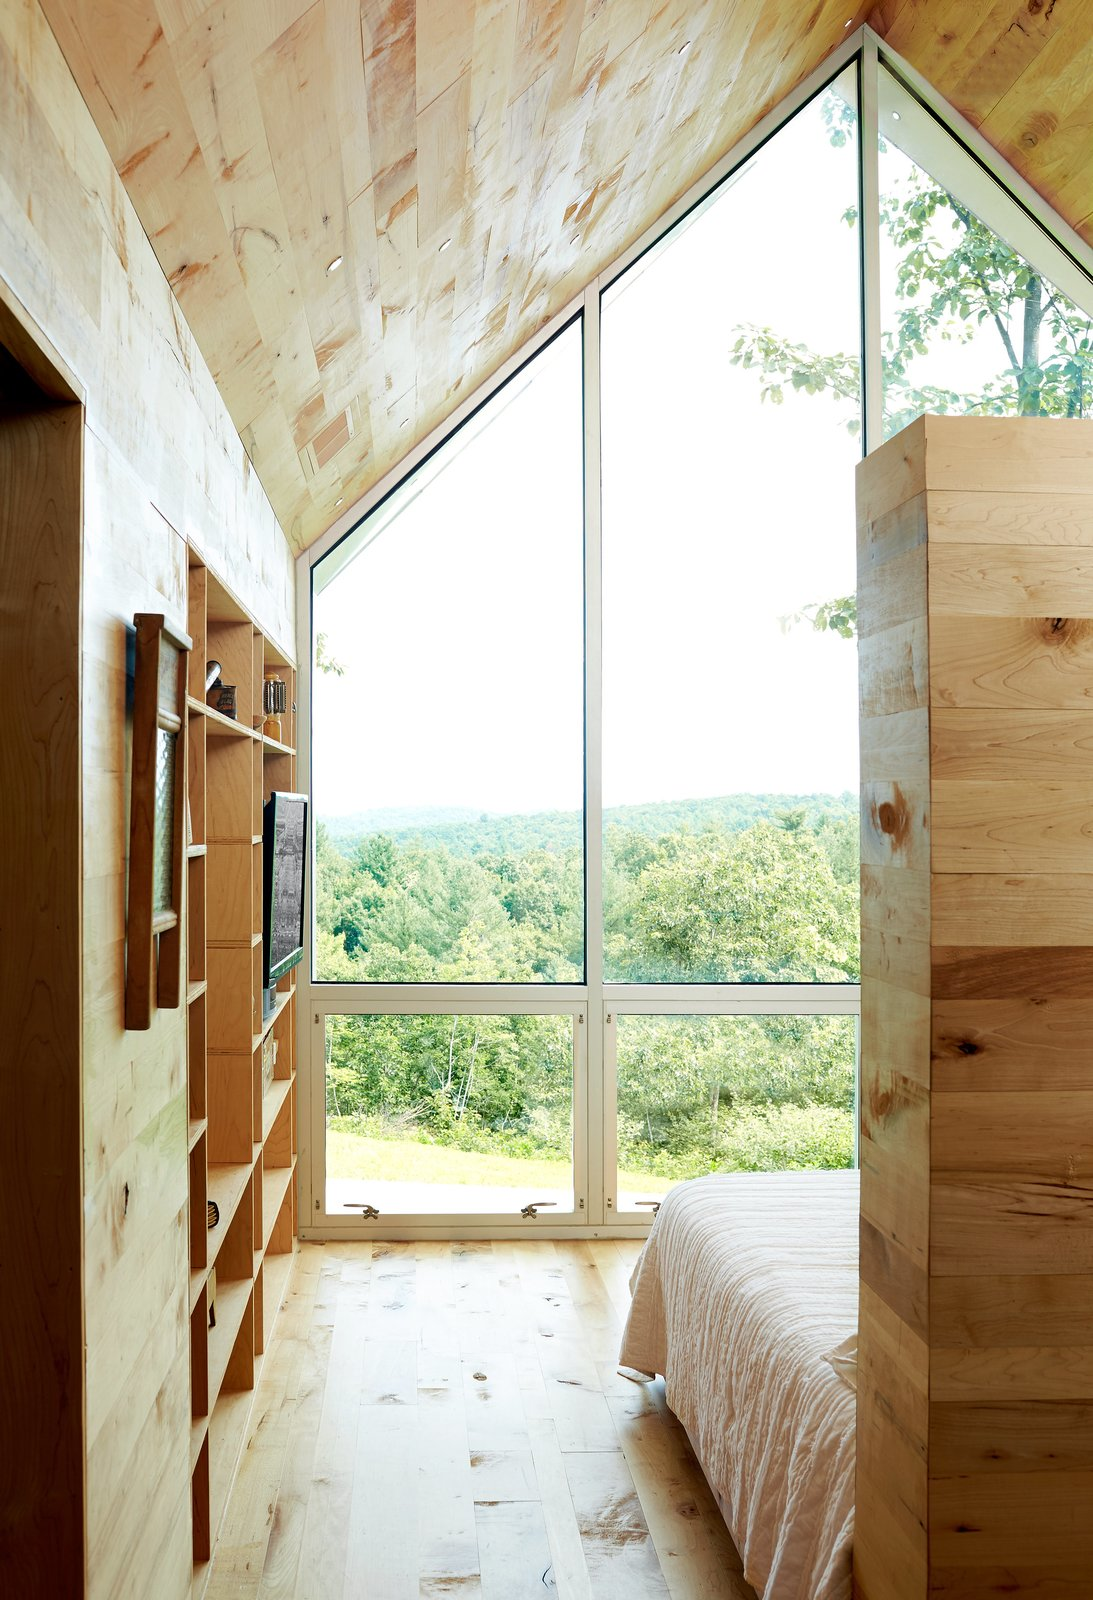 An 800-square-foot addition expands the Virginia home of Lauren and Josh Stegall. Built for $120,000, the structure has a large window overlooking the Blue Ridge Parkway and Sugarloaf Mountain. Tagged: Bedroom, Bed, Storage, Bookcase, and Medium Hardwood Floor. Happy Trails - Photo 2 of 8